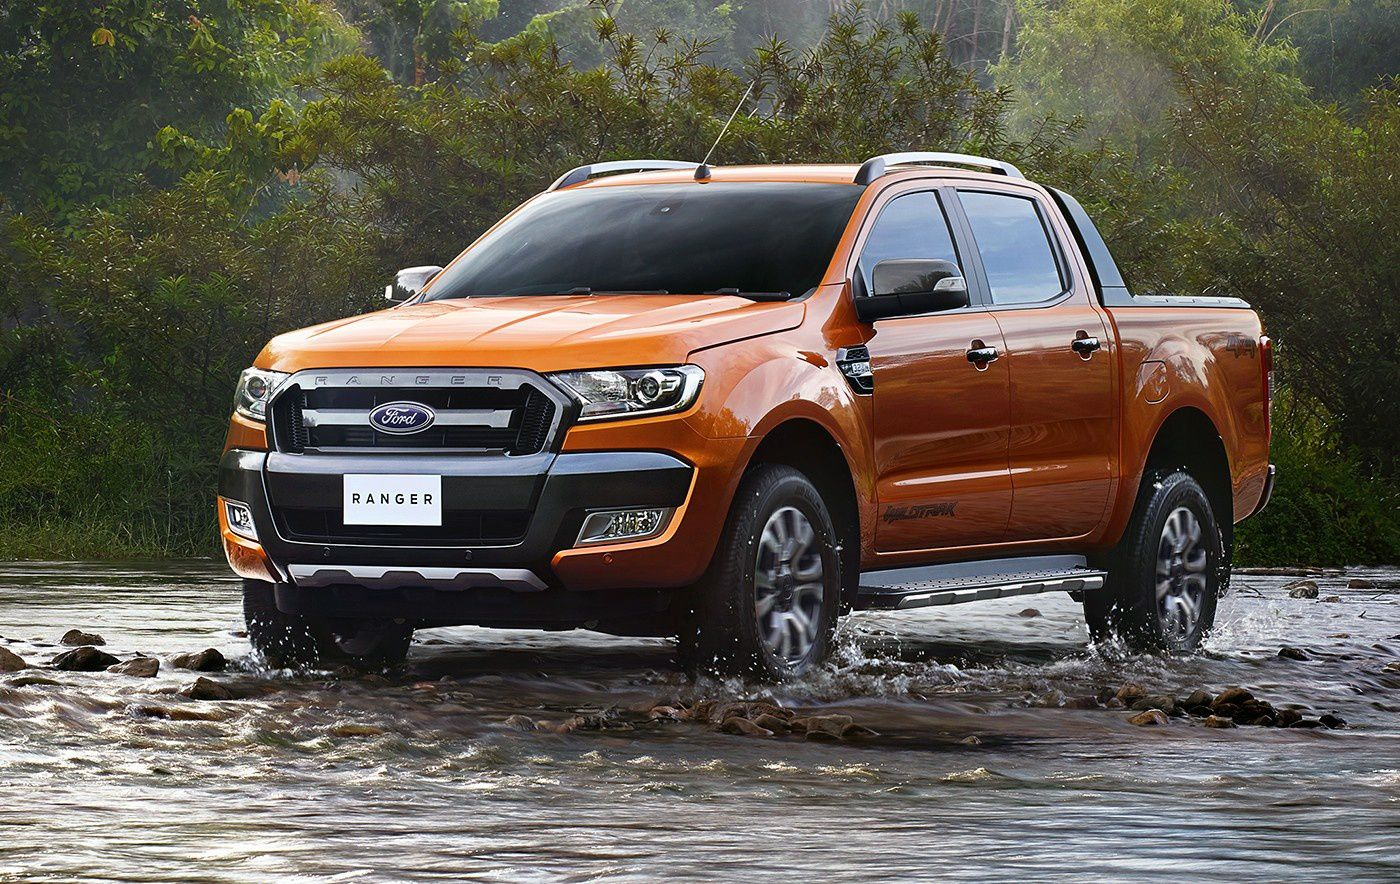 1 ) Ford fusion.  2 ) Ford ranger.